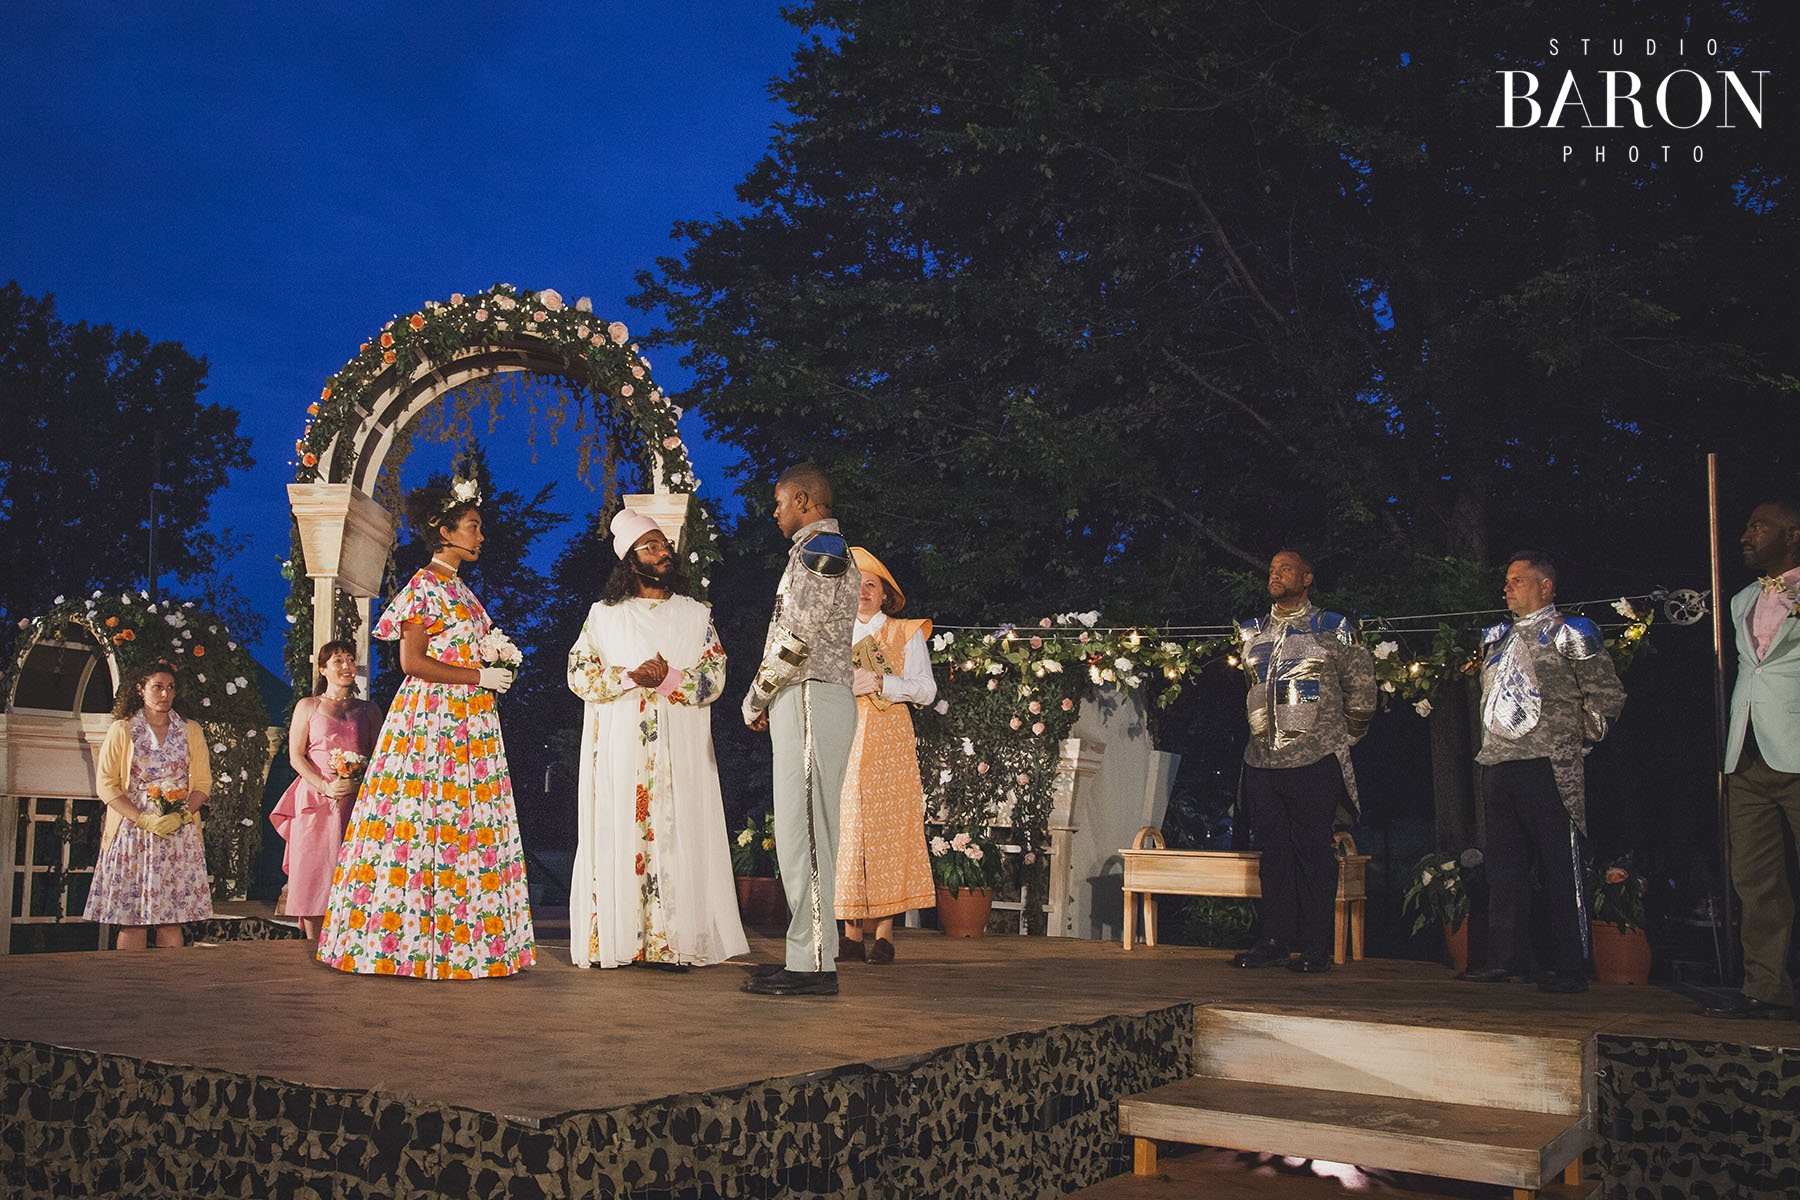 2017 Summer production of 'Much Ado About Nothing' - © Studio Baron Photo